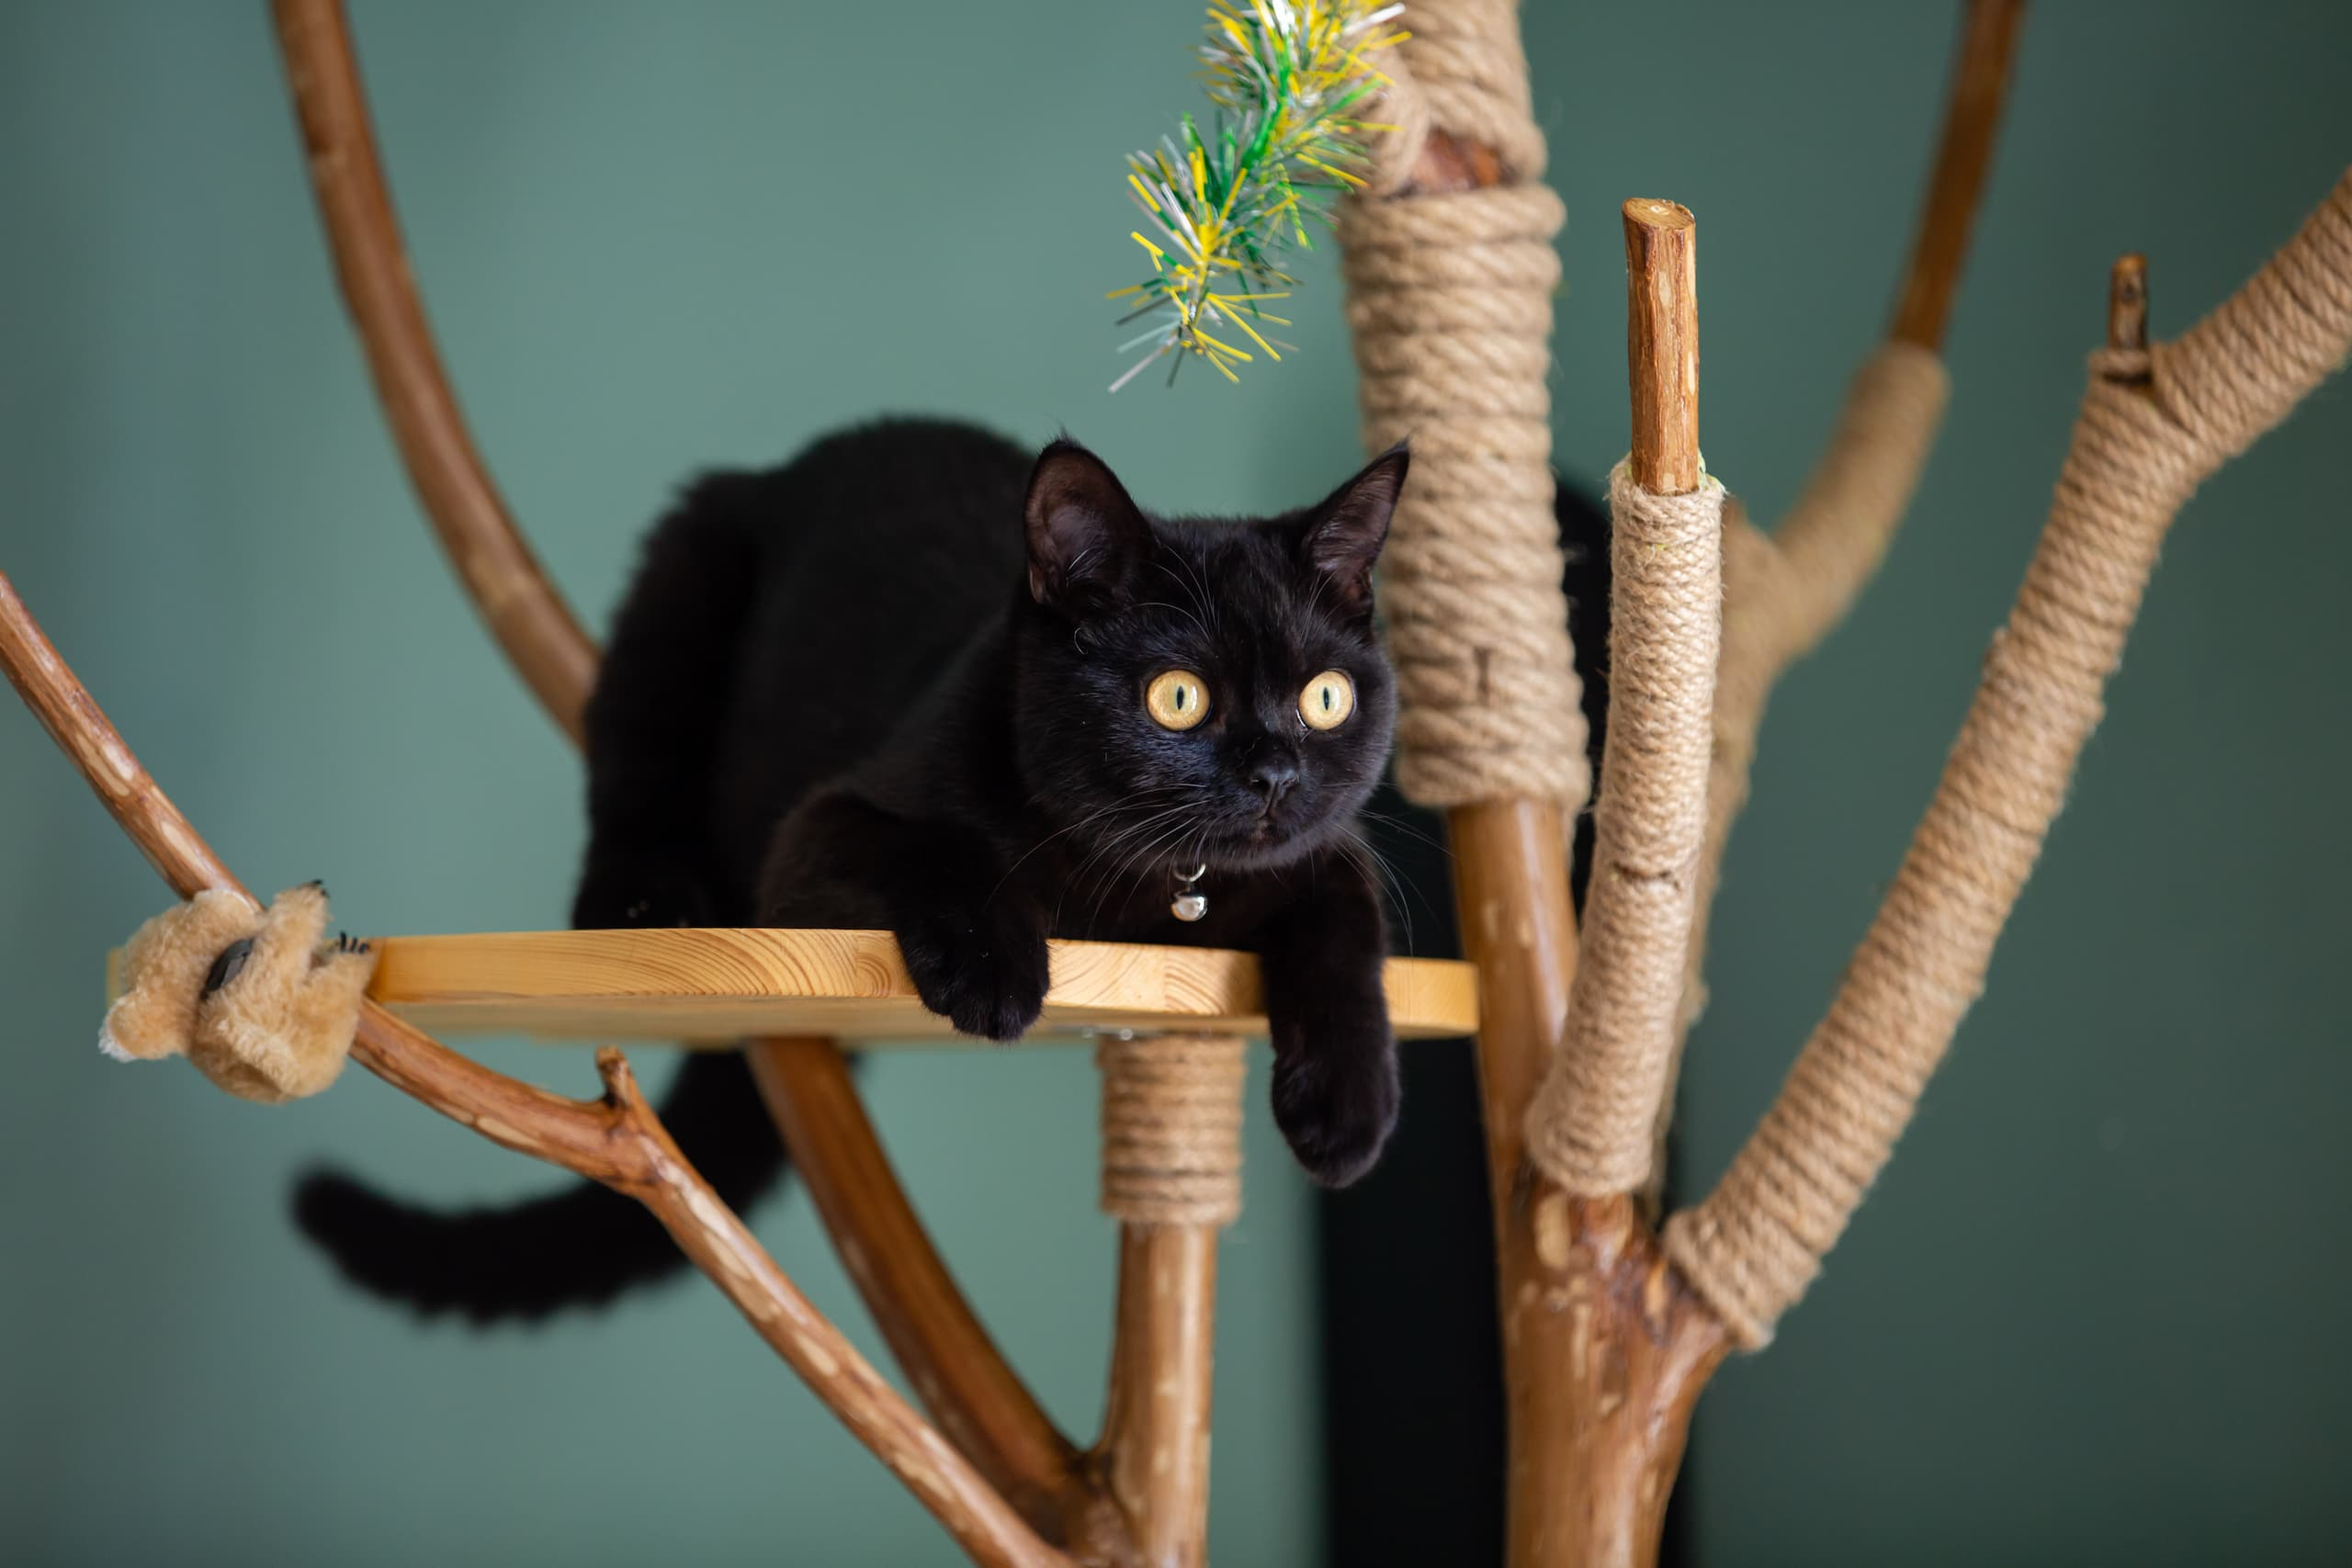 Chat noir dans un arbre à chat de style naturel